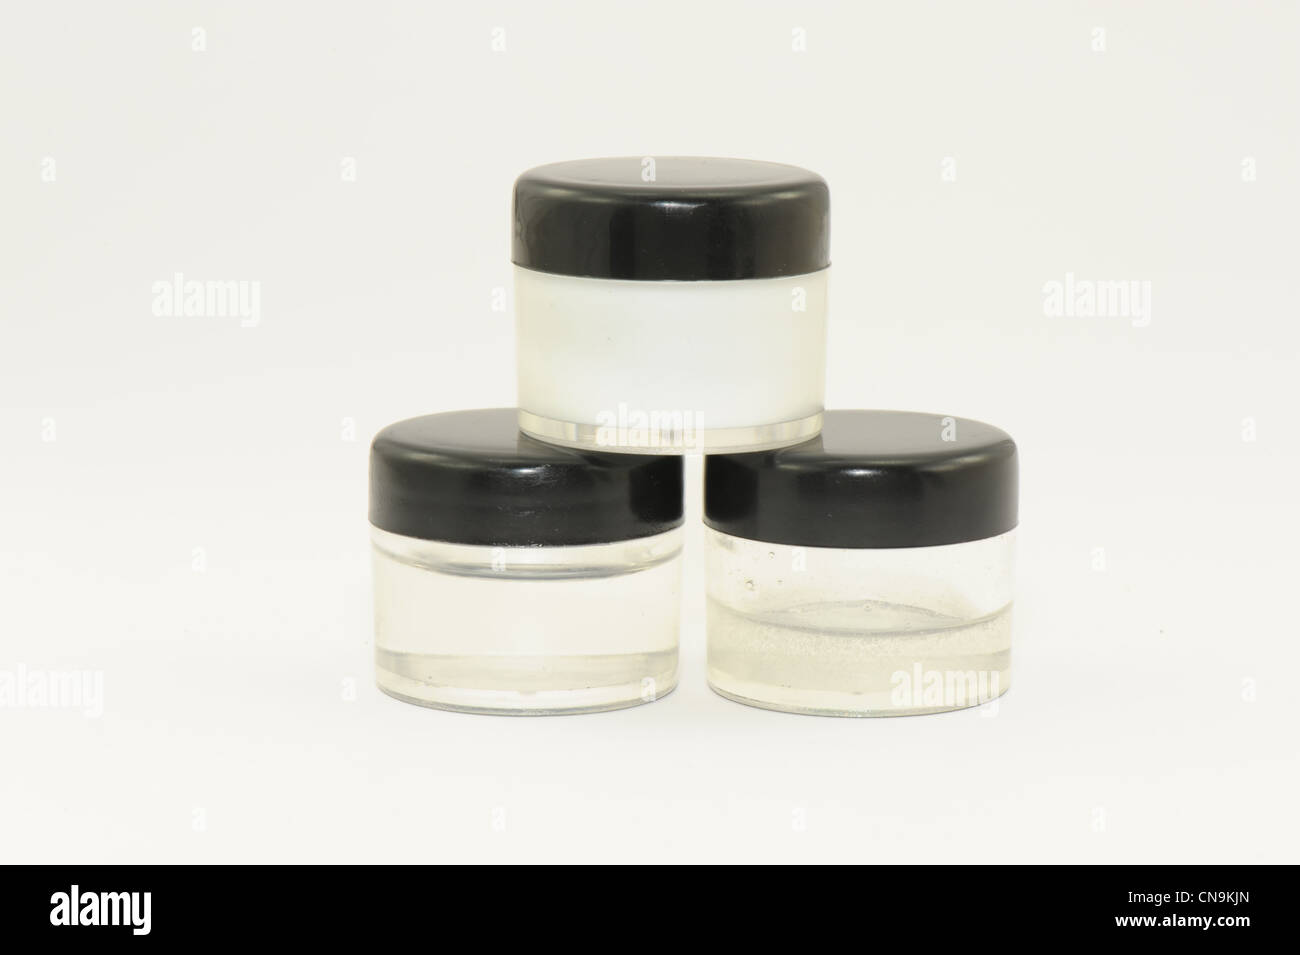 jars 3 clear plastic jars with black plastic lids opaque liquid inside taken on a white background - Stock Image